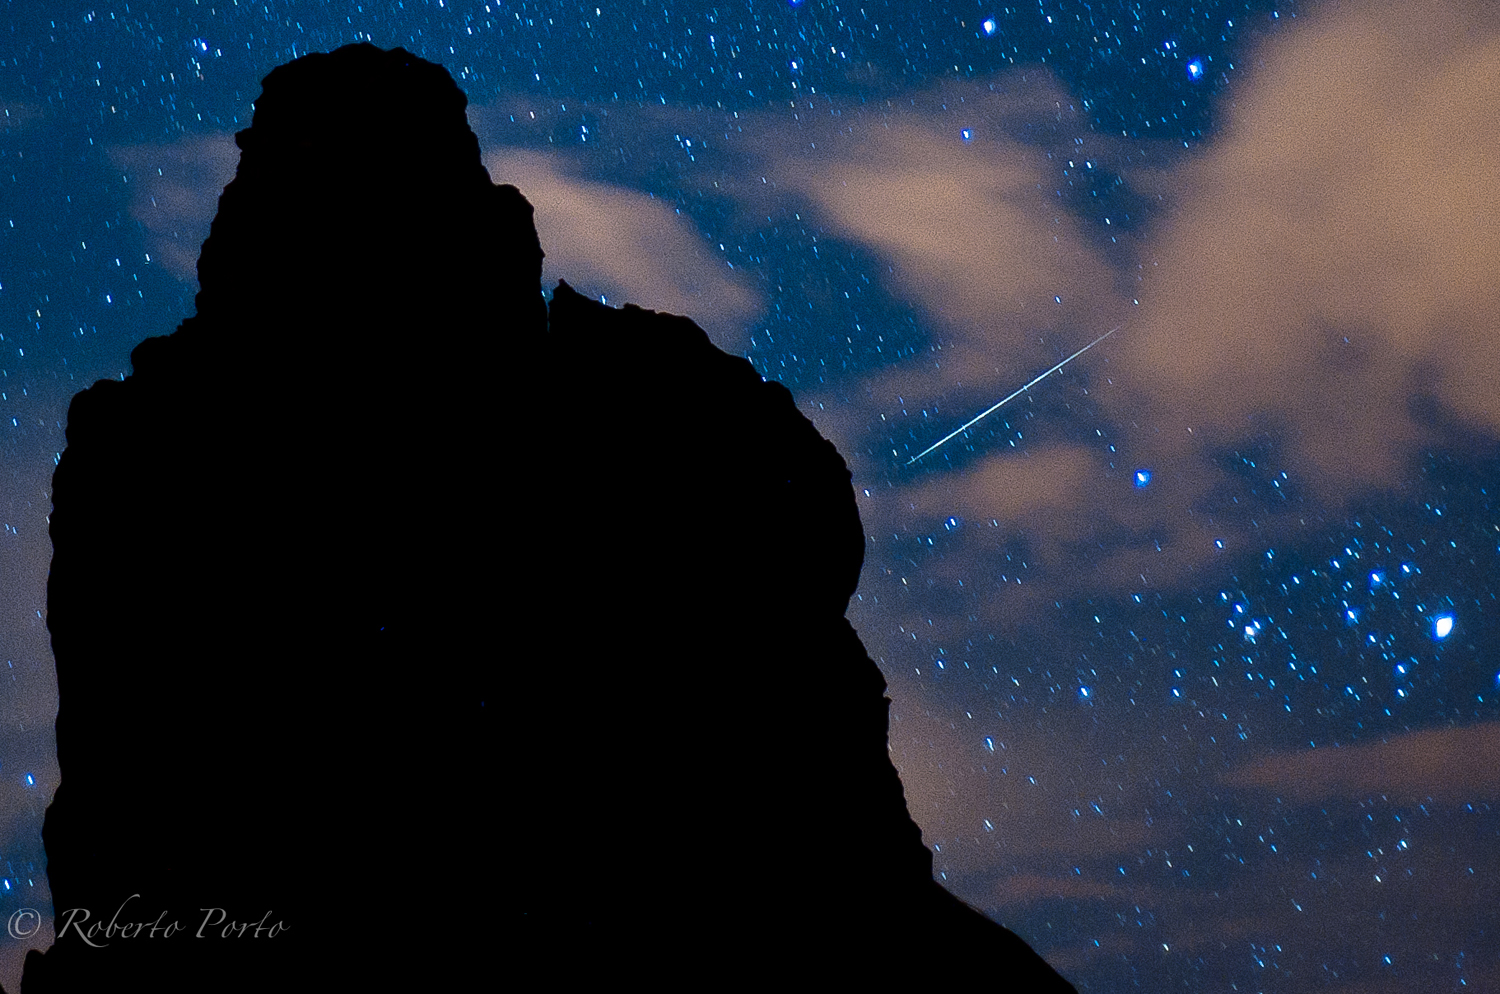 The 2016 Quadrantid meteor shower of 2016 peaks before dawn on Monday Jan. 4, and could be one of the best of the year, weather permitting. Here, astrophotographer Roberto Porto captures a Qudrantid meteor  over Tenerife in Spain's Canary Islands in 2012.